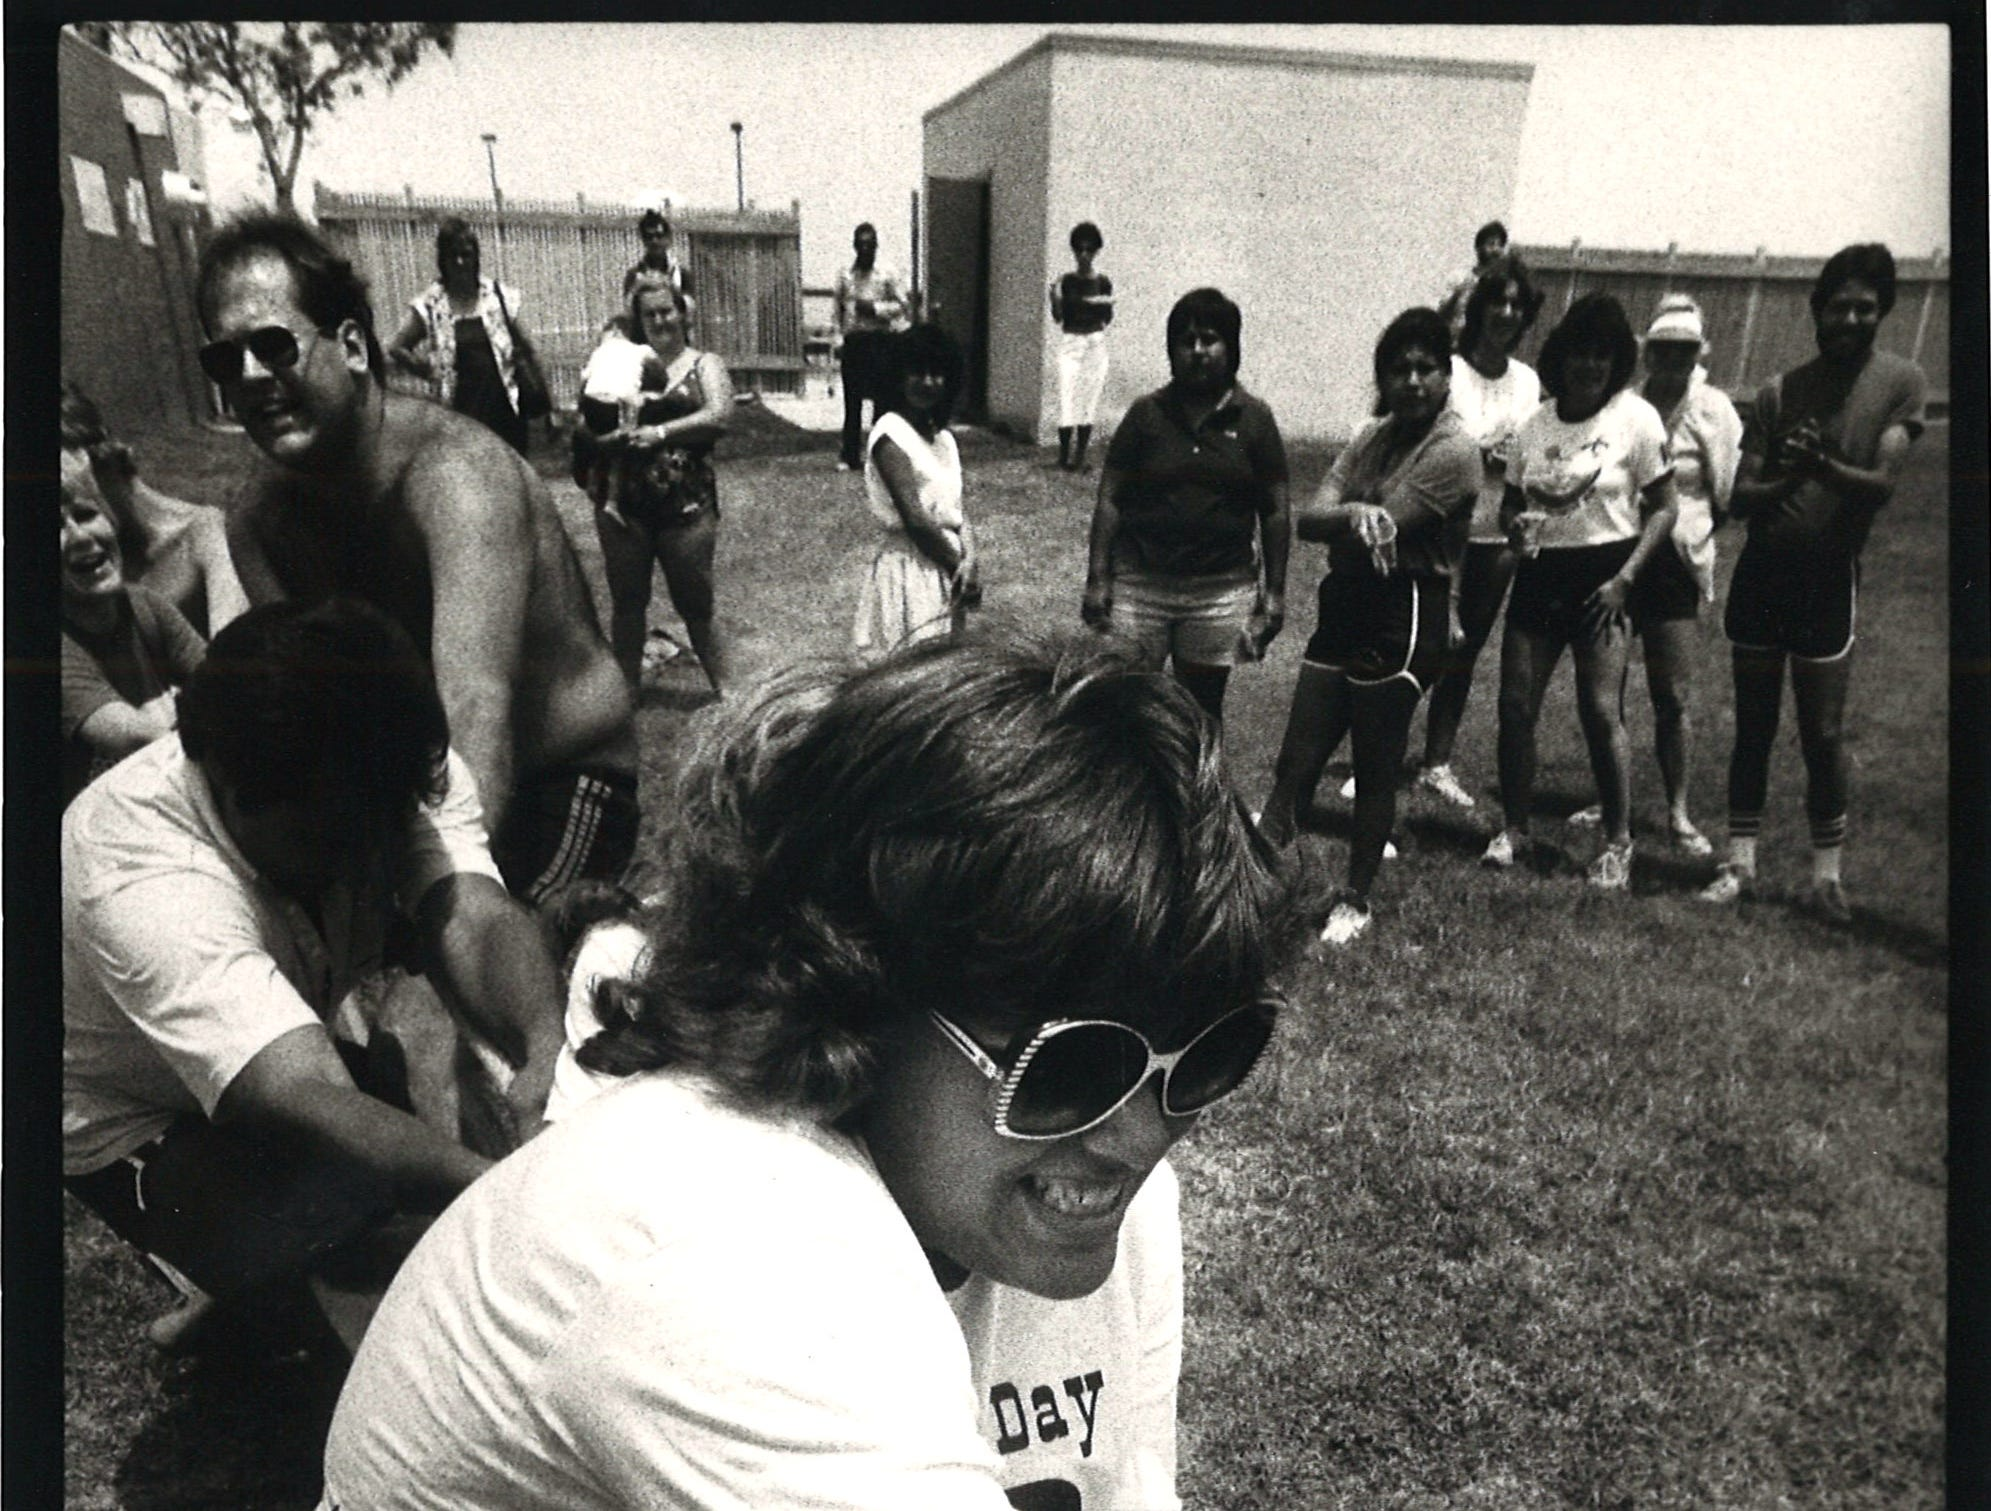 Neva Reaves struggles to help her team in the tug-of-war competition during Splash Day at Corpus Christi State University on April 27, 1983. Splash Day marks the official opening of the school's pool.